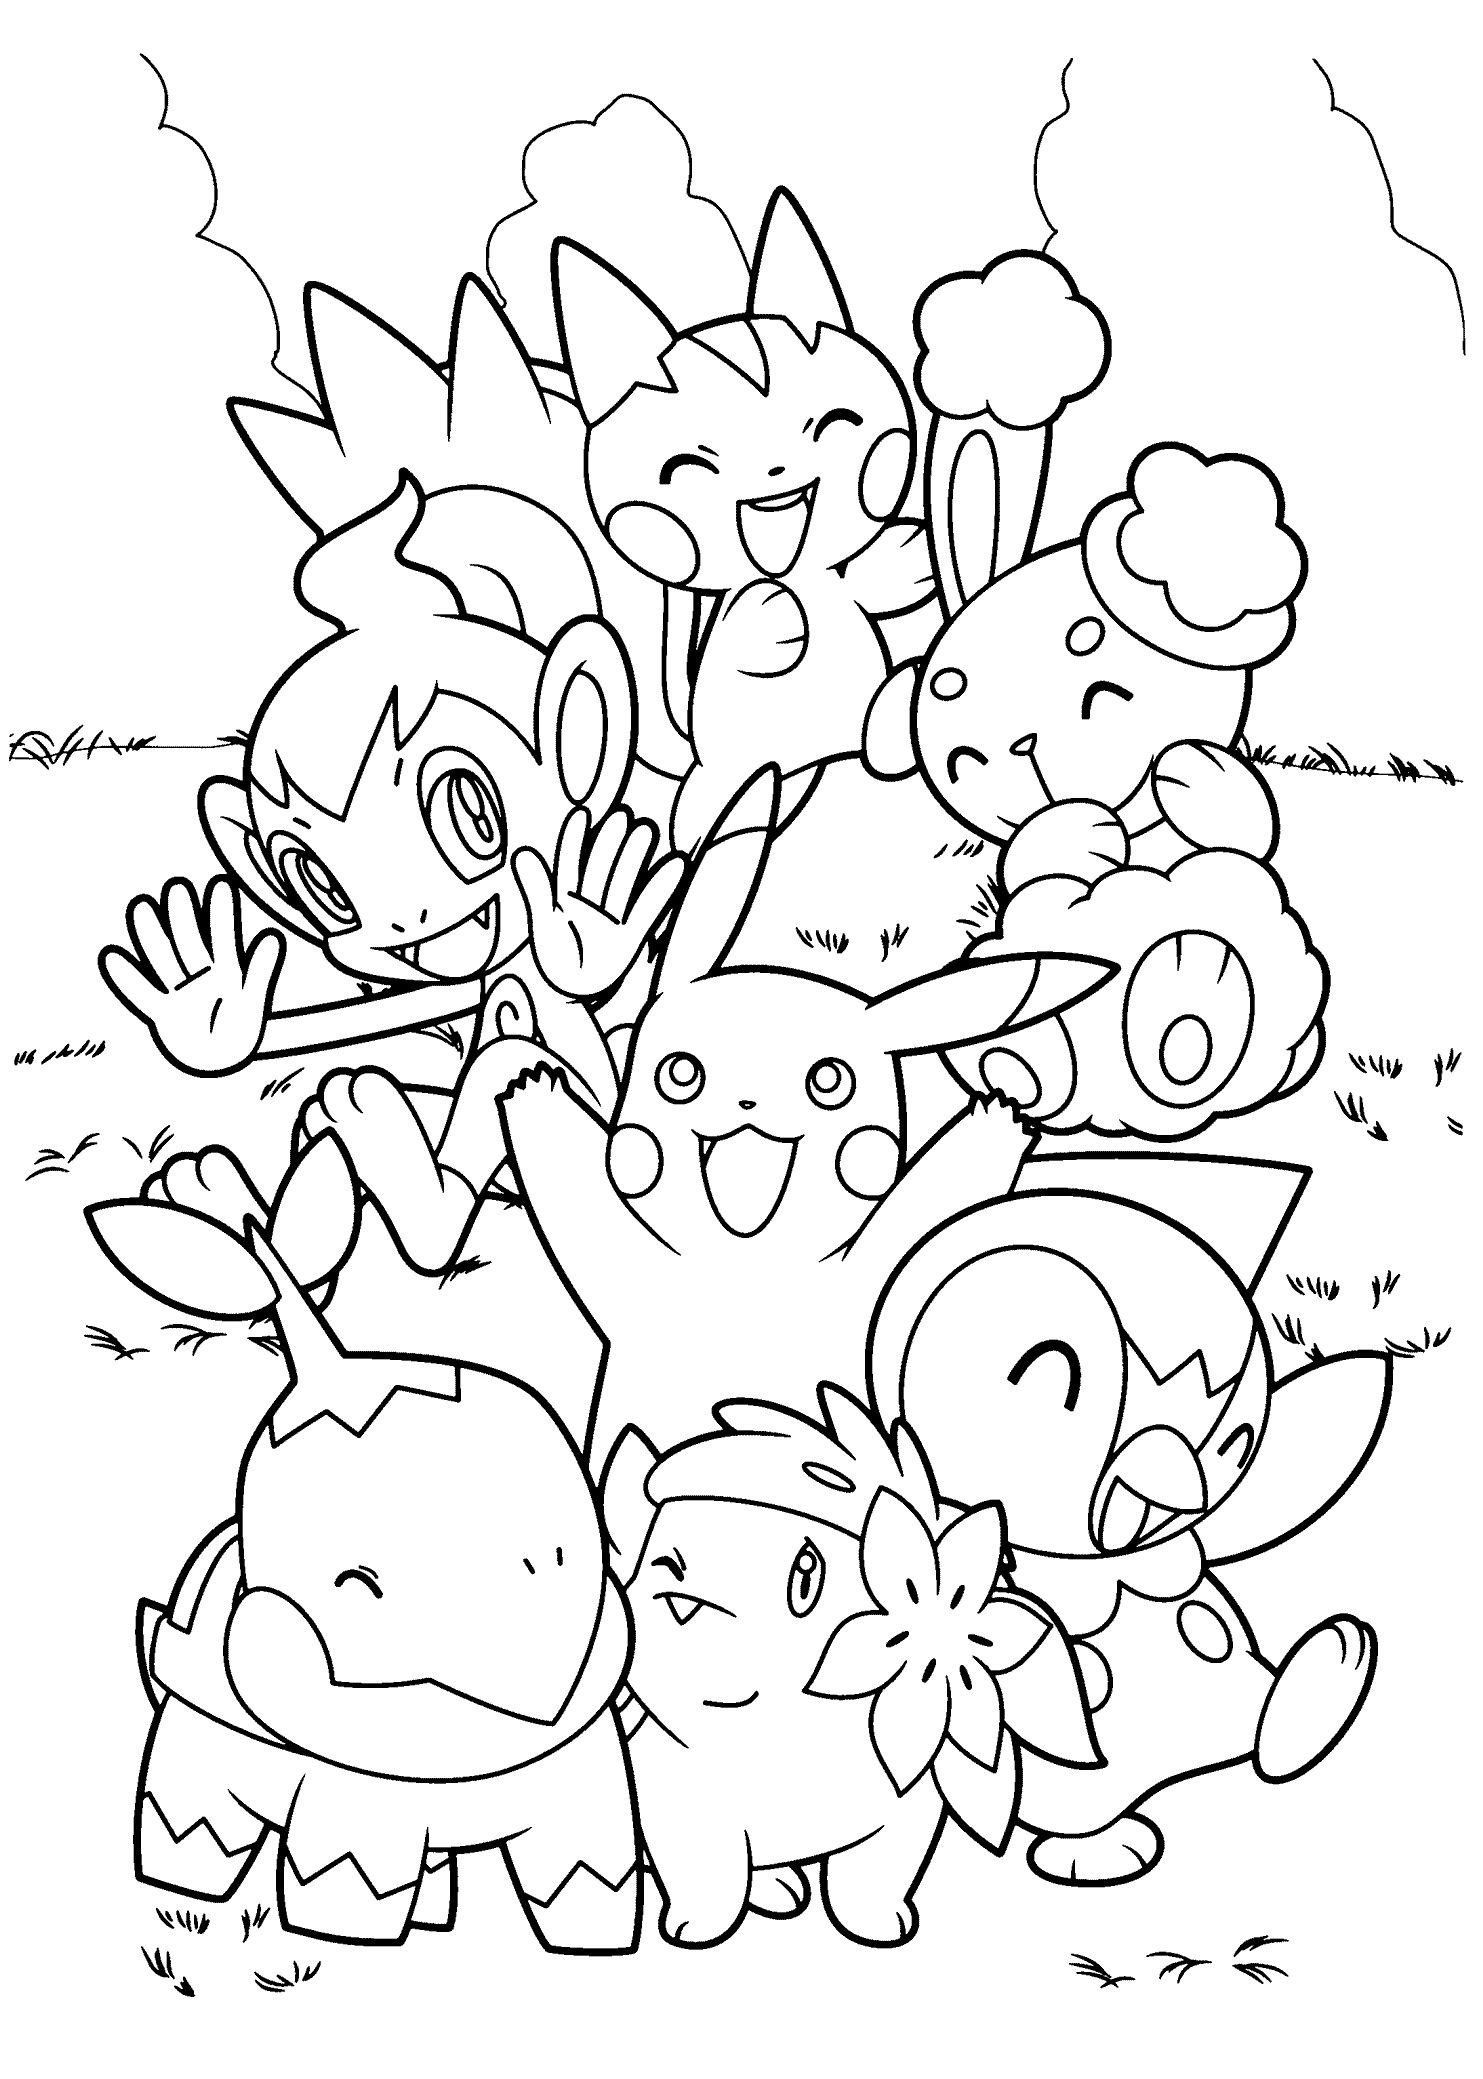 Poke Mon Coloring Pages Pokemon Full Coloring Pages With Images Pokemon Coloring Pages Fall Coloring Pages Pokemon Coloring Sheets